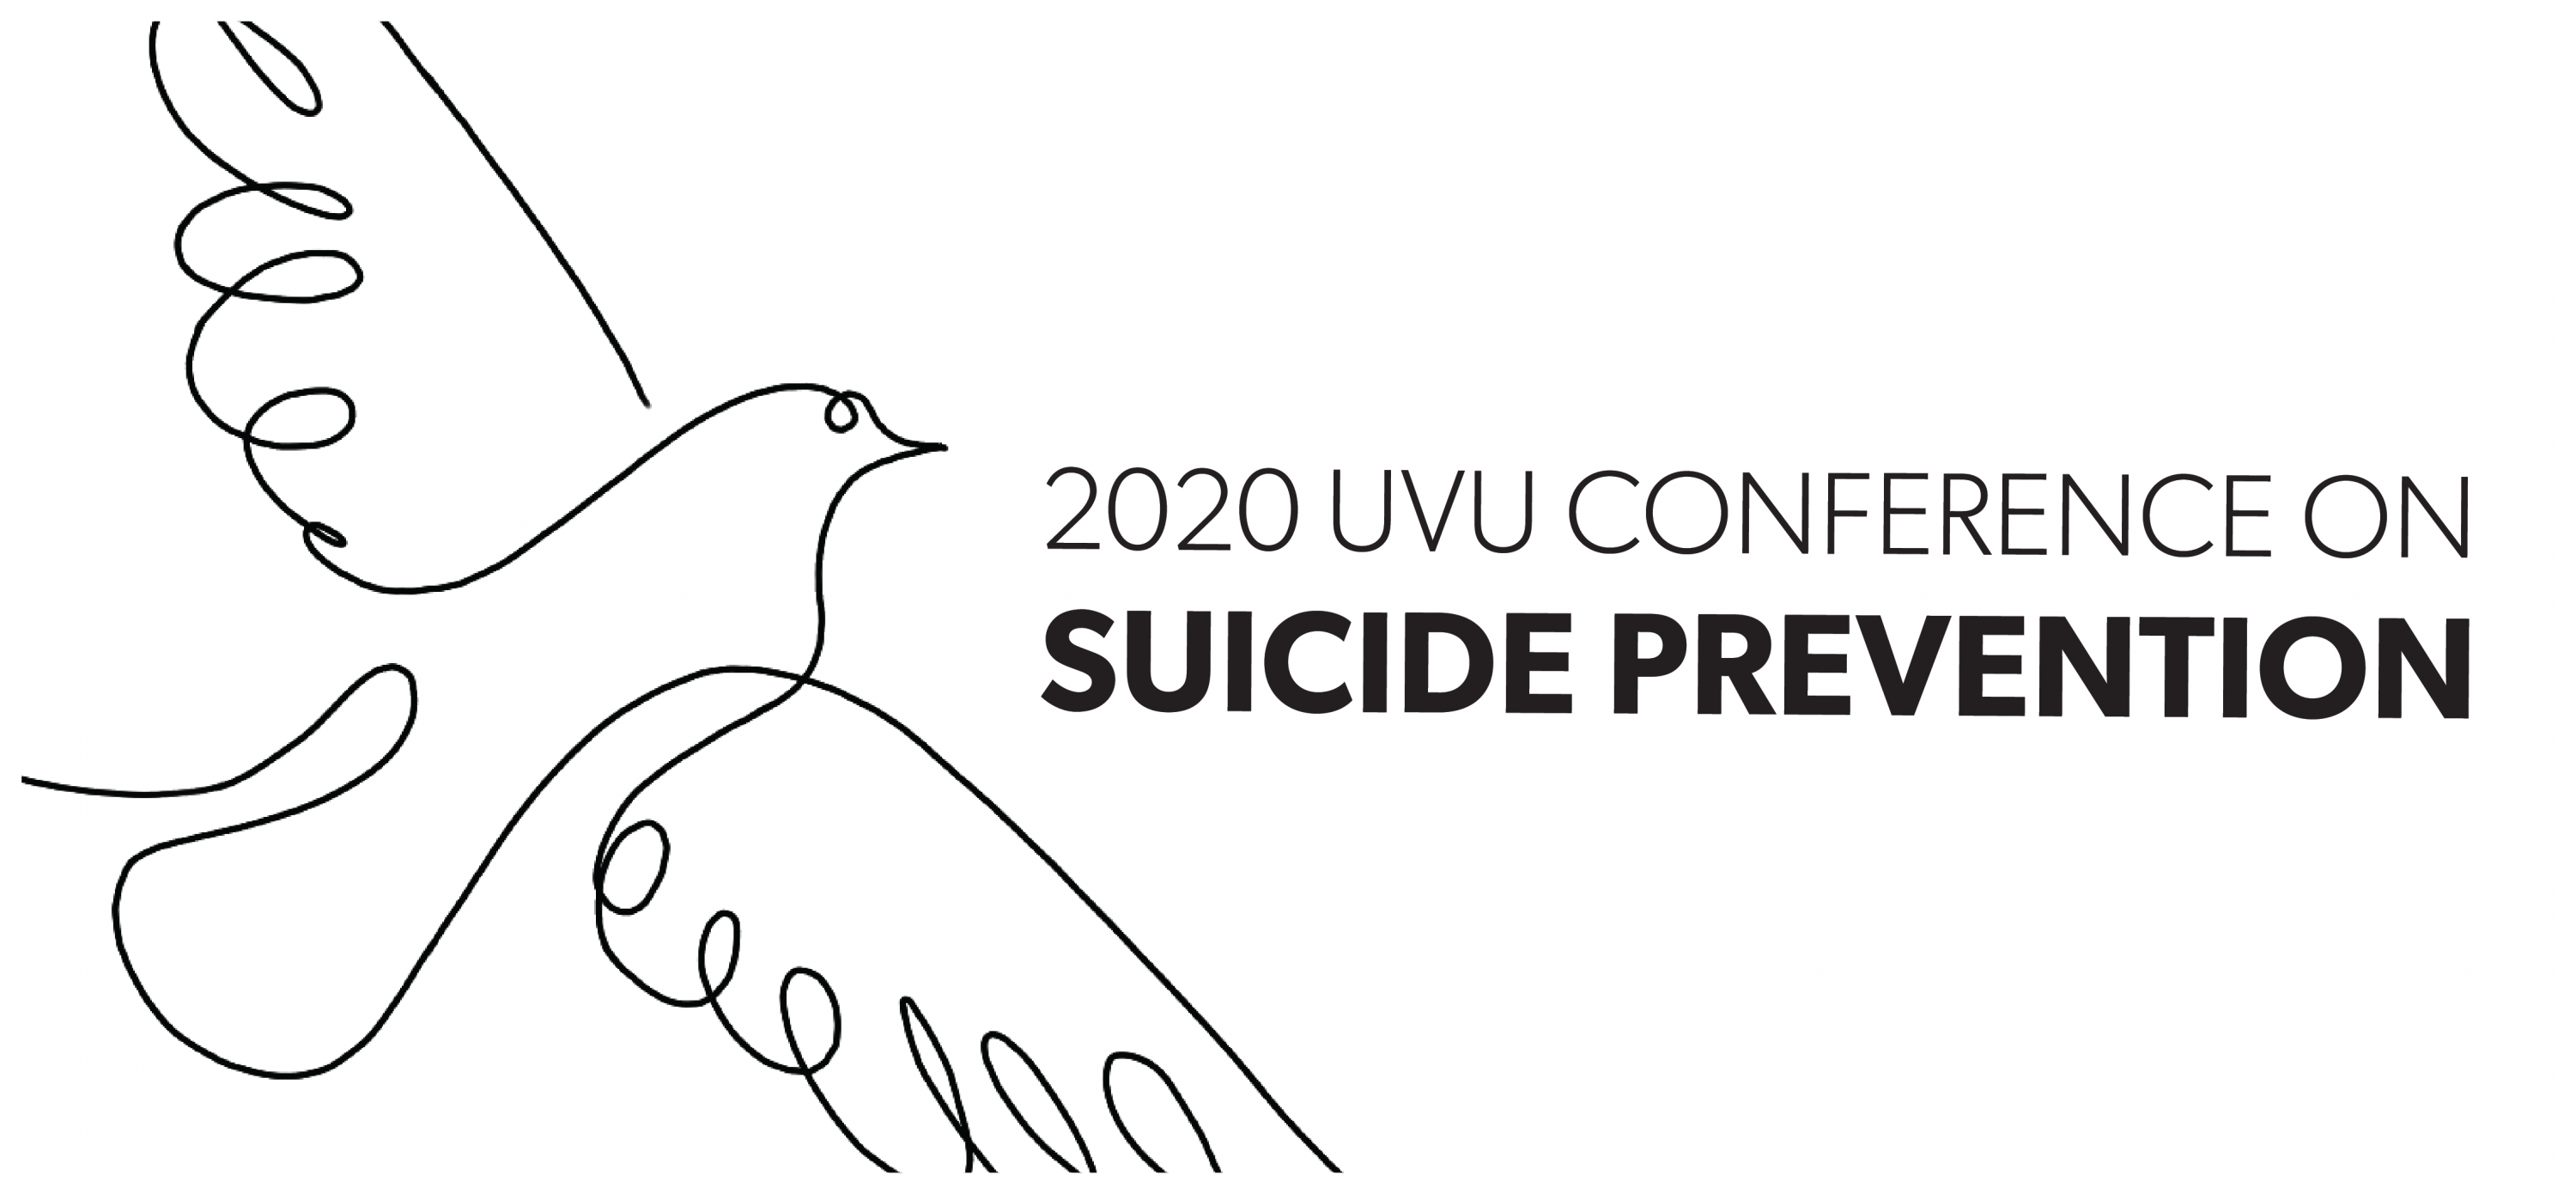 2020 UVU Conference on Suicide Prevention--line drawing of a dove